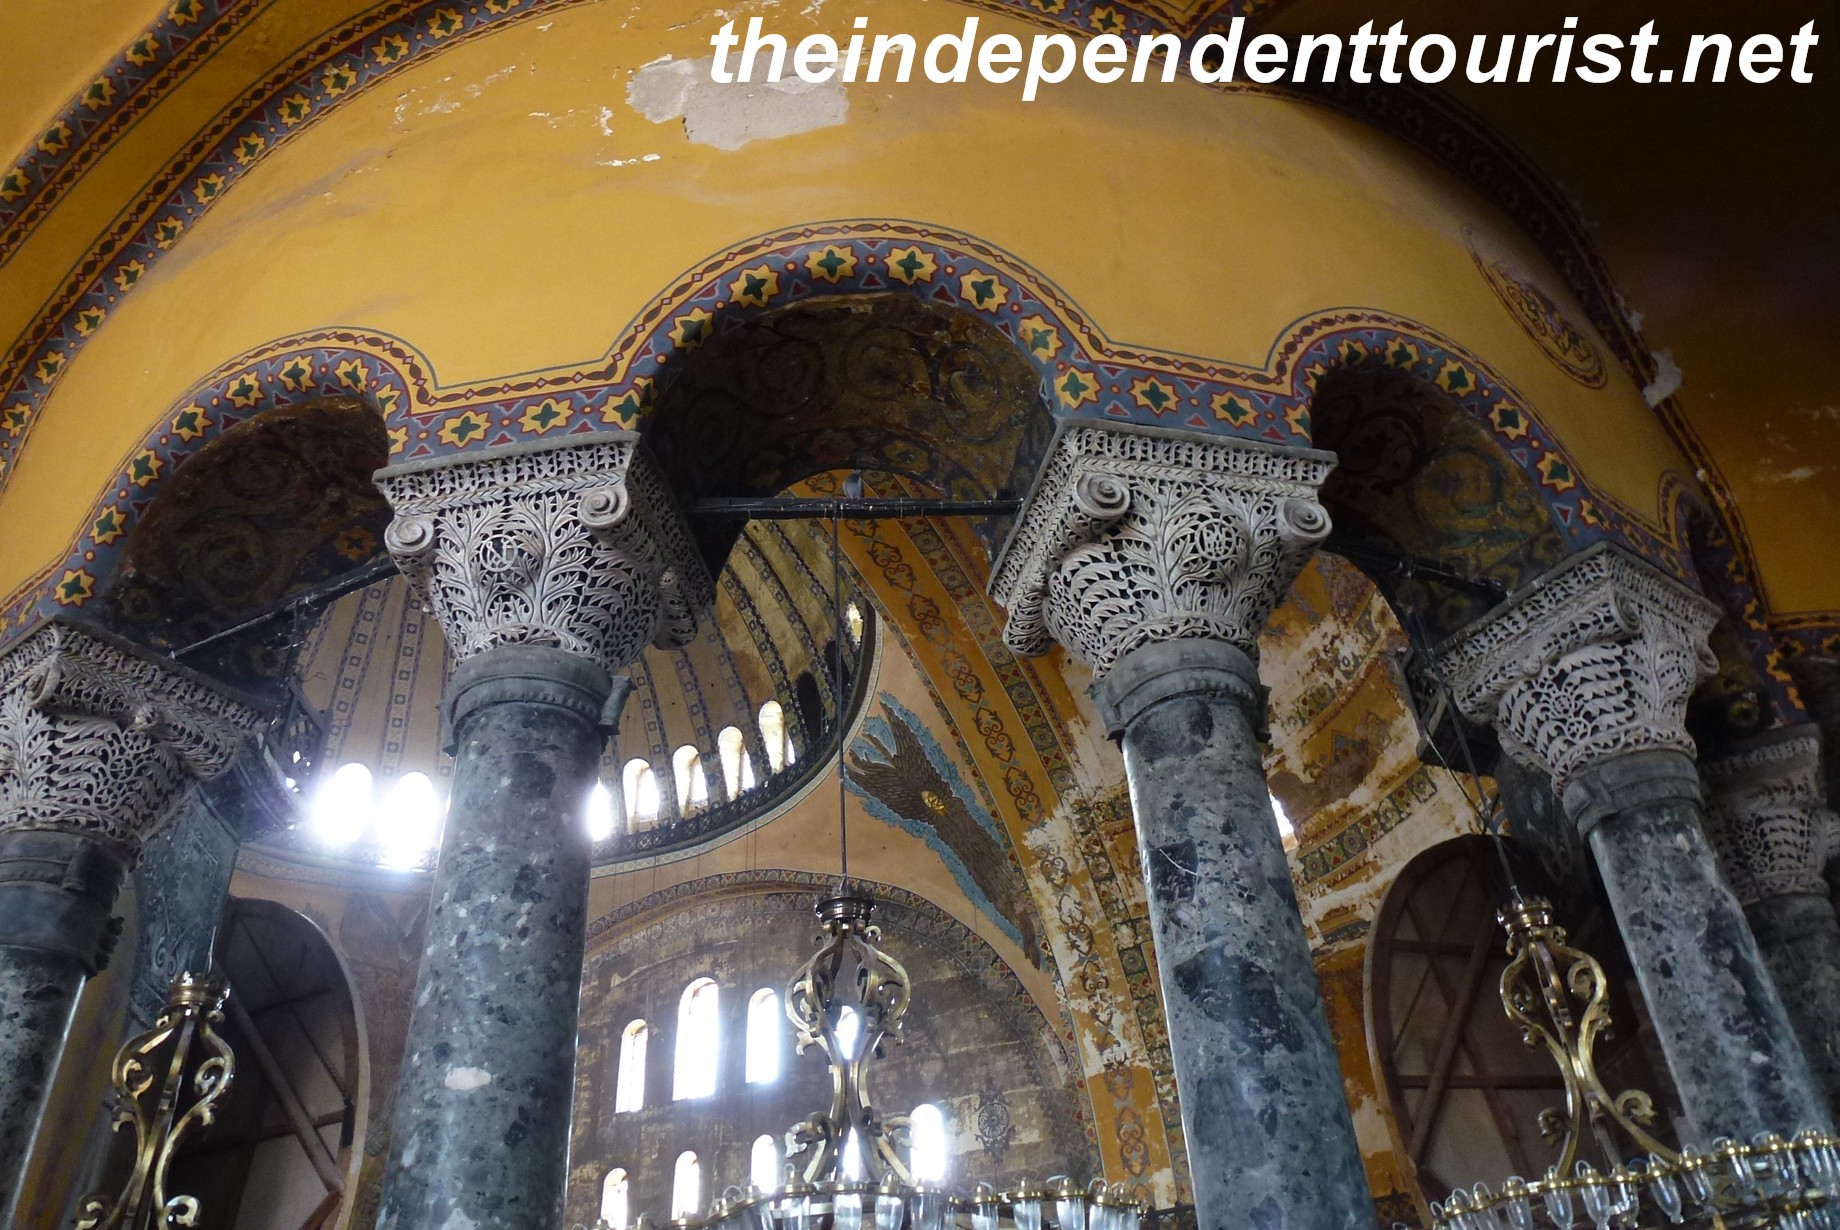 Visiting the Hagia Sophia and Blue Mosque – Two of ...